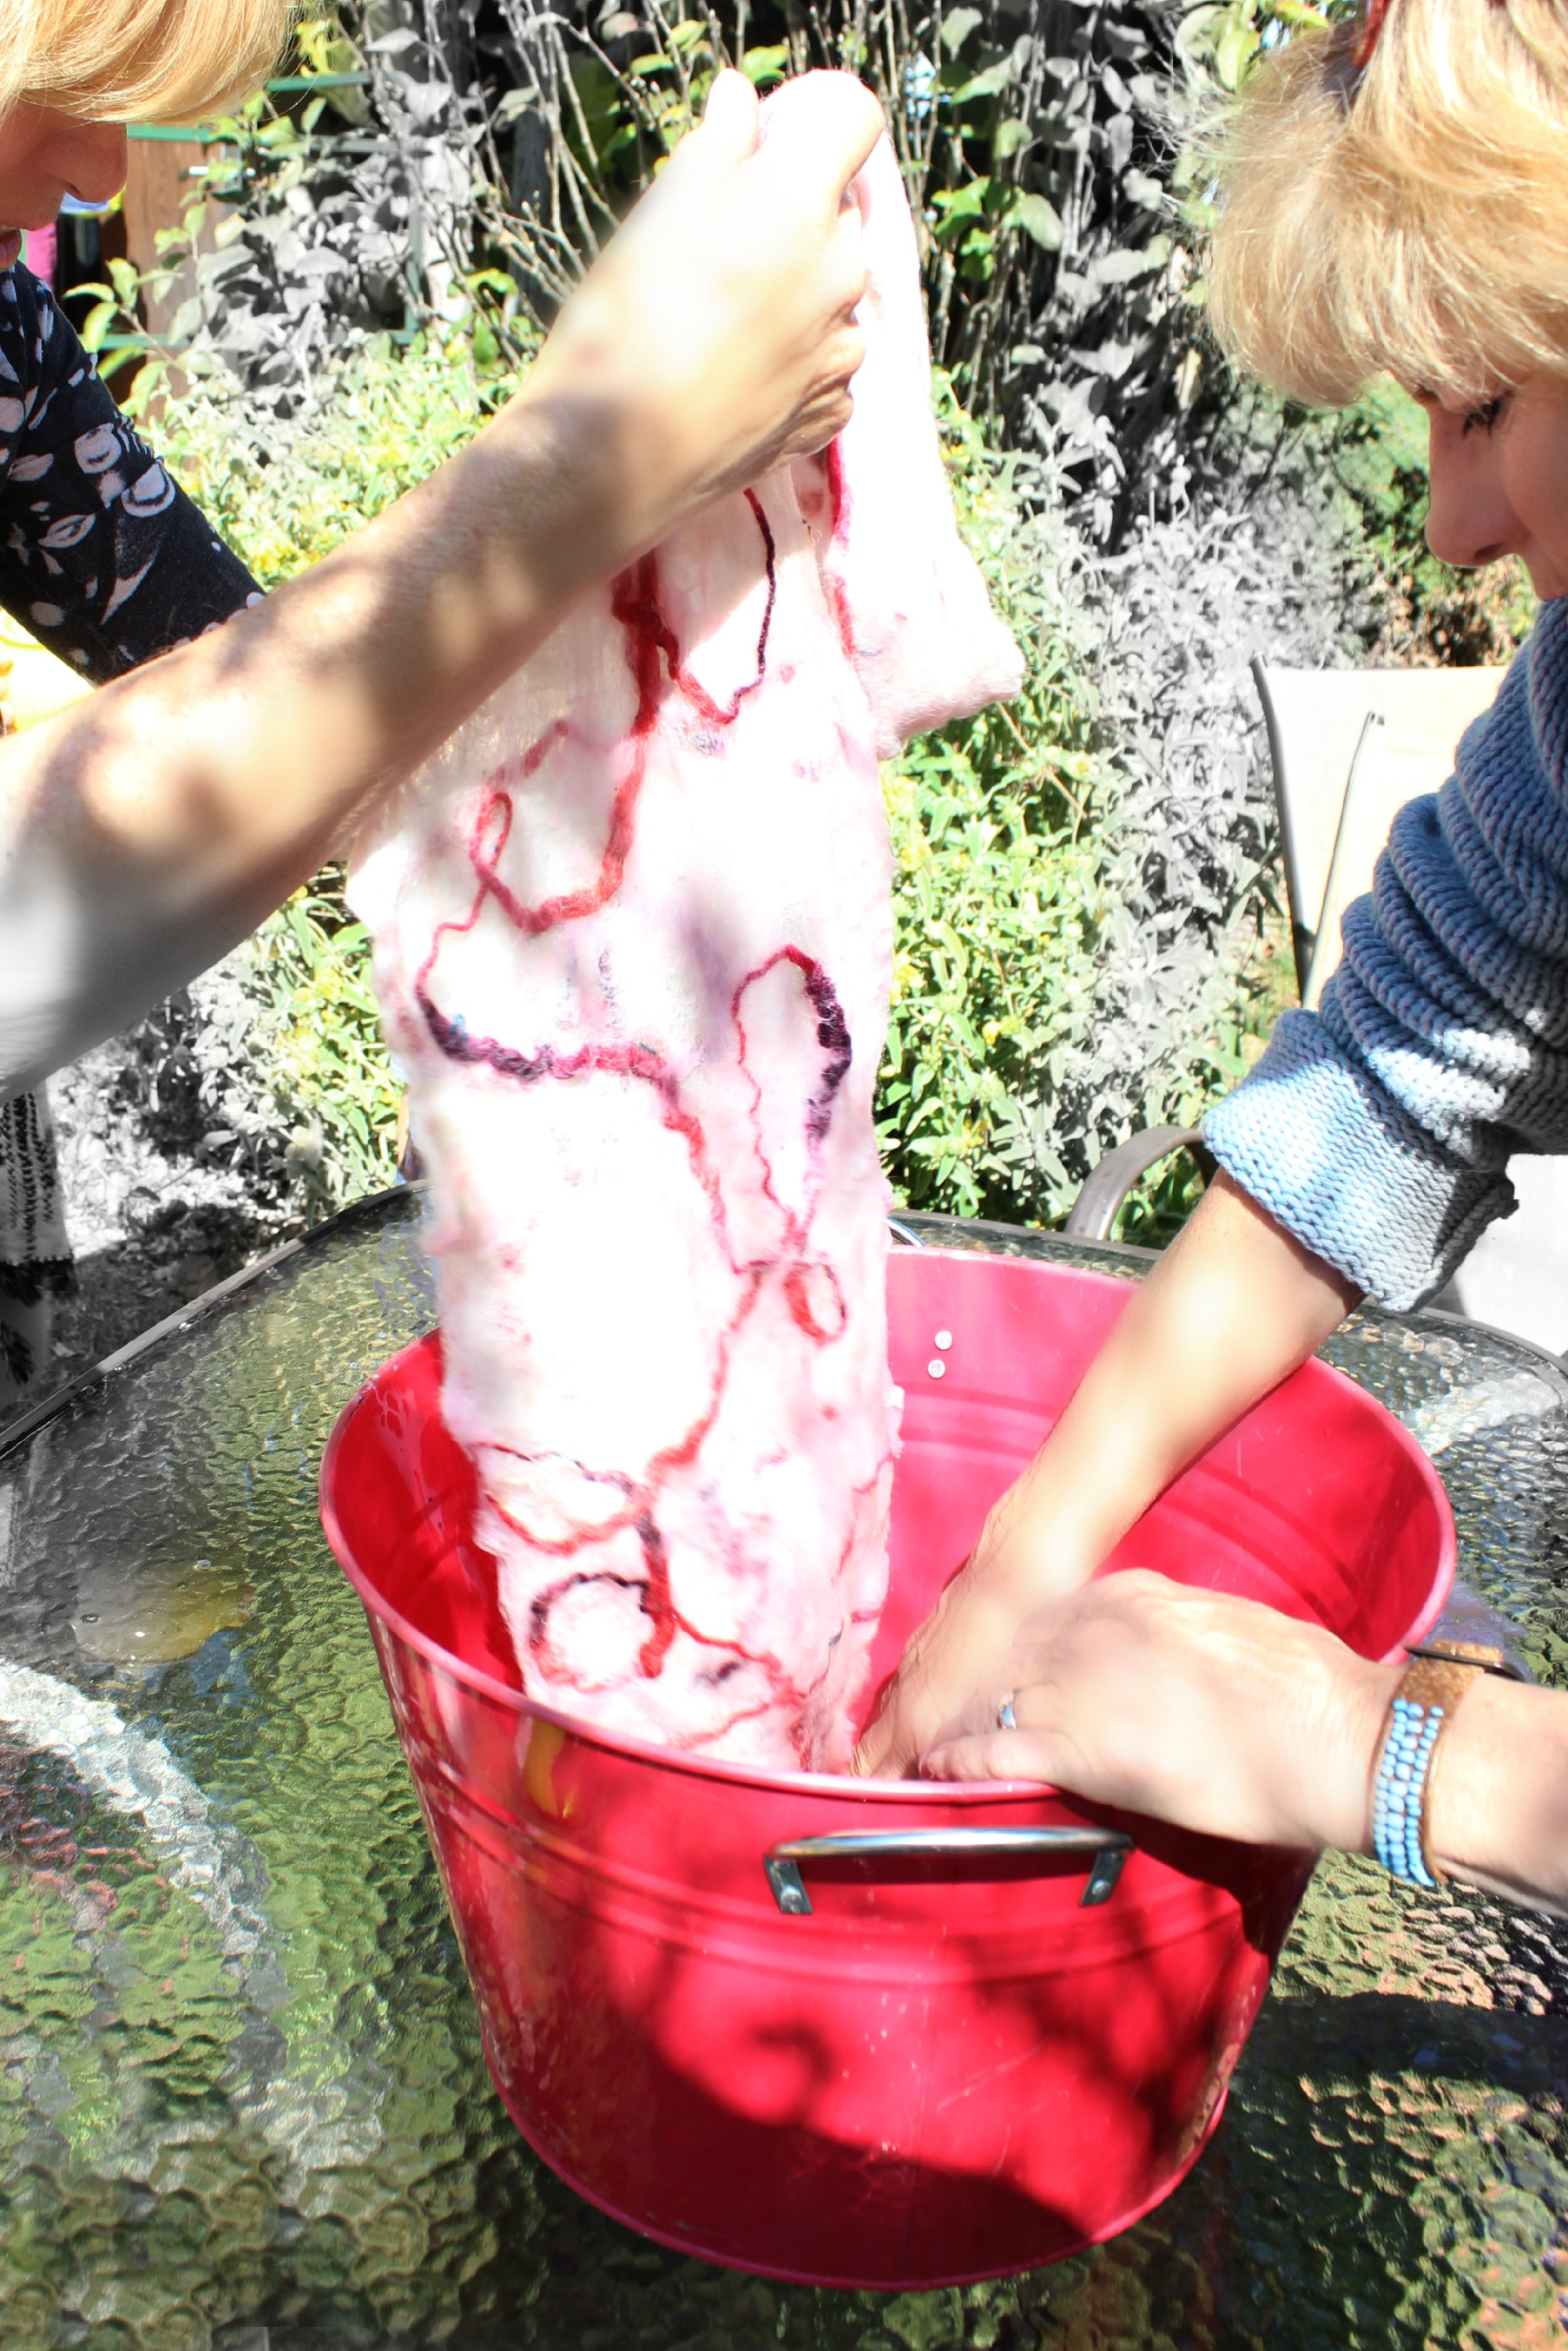 130227 Washing off Artfelt paper with boiling water in a red bucket